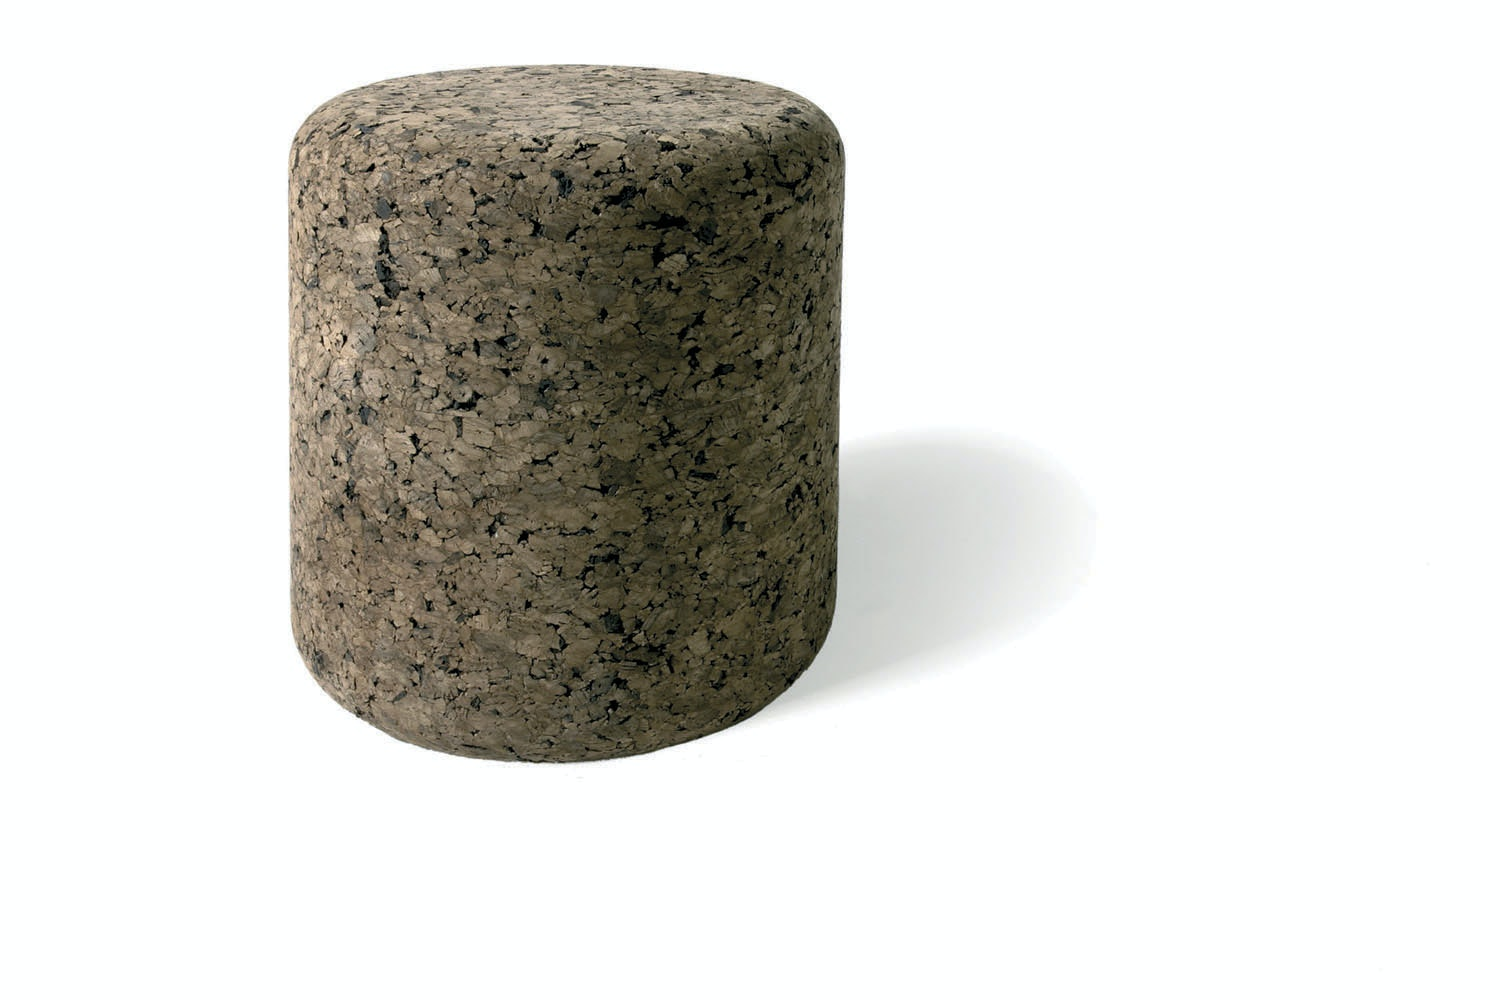 Corks Stool by Jasper Morrison for Moooi